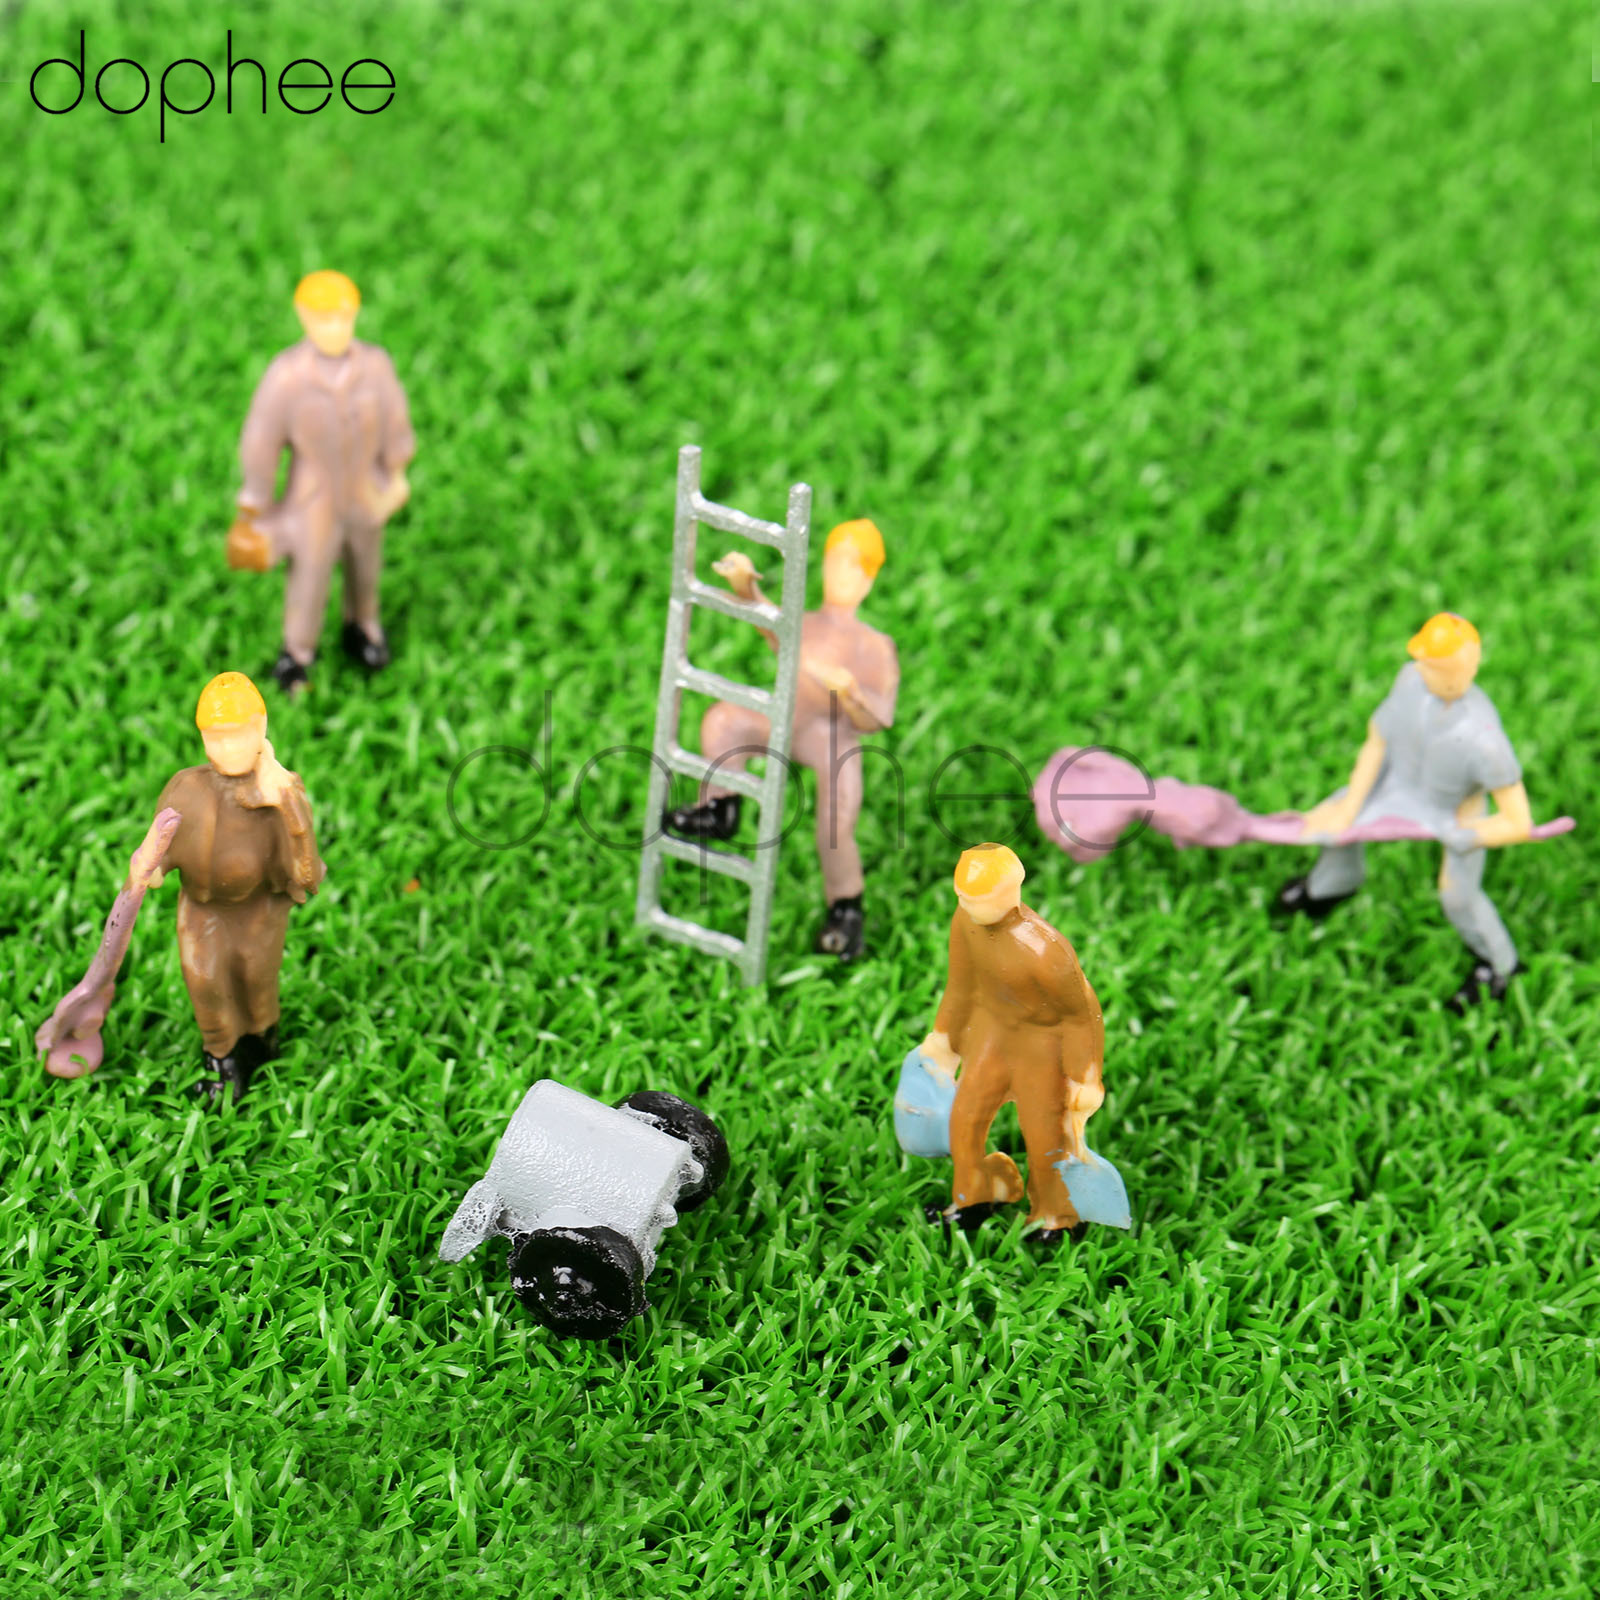 dophee 25pcs Model Train Workers Persons Figures With Ladder and Bucket 1/87 HO Scale Railway Landscape Layout